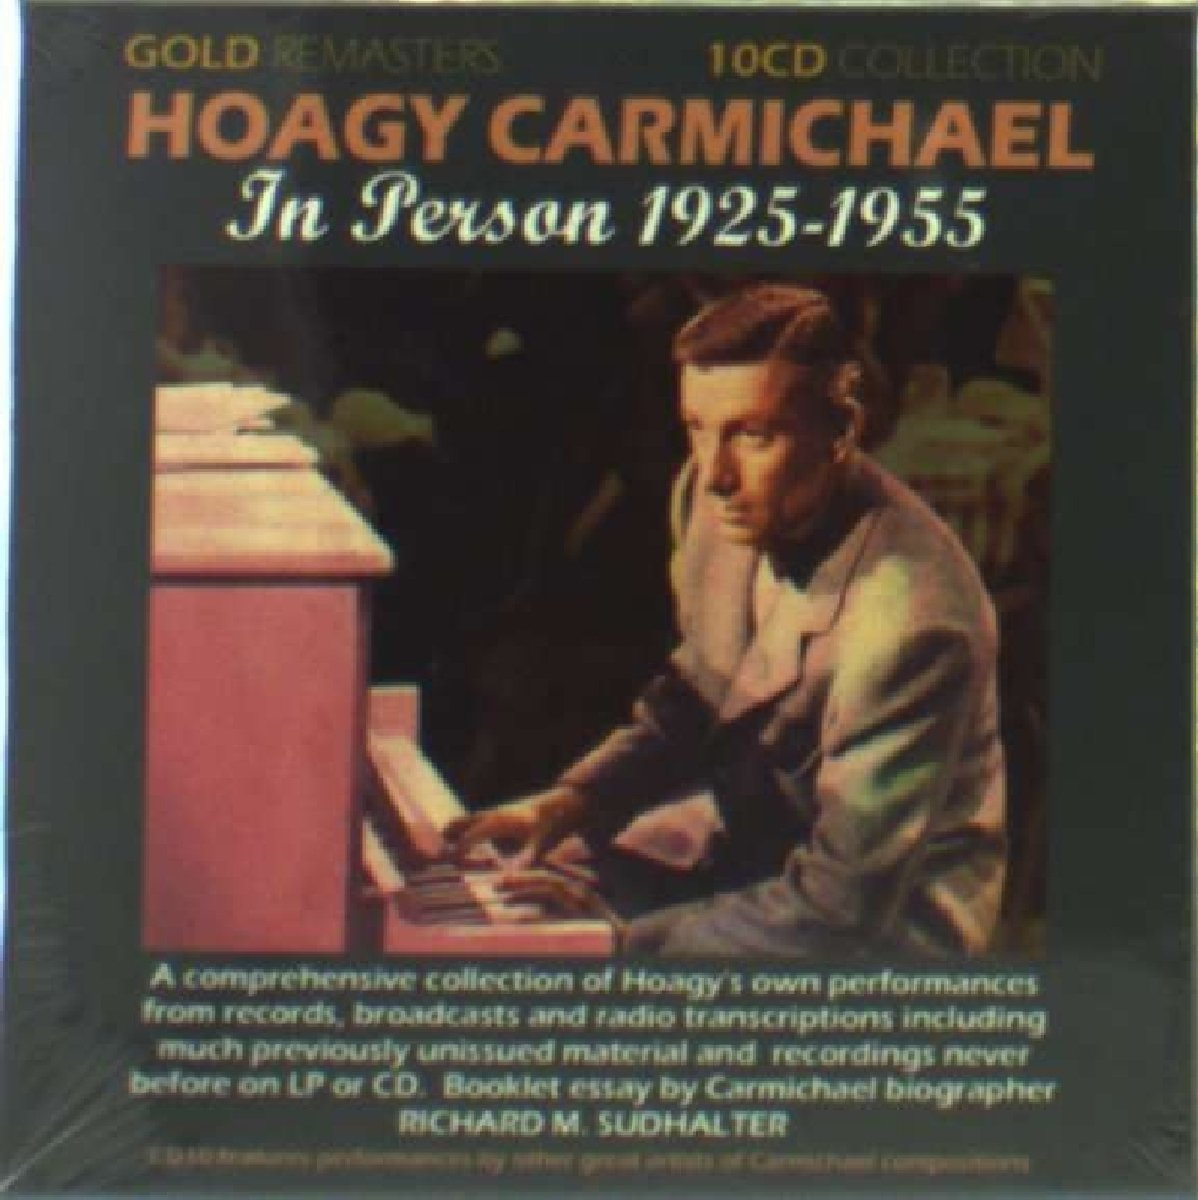 Hoagy Carmicheal In Person 1925-1955 by Avid Records UK